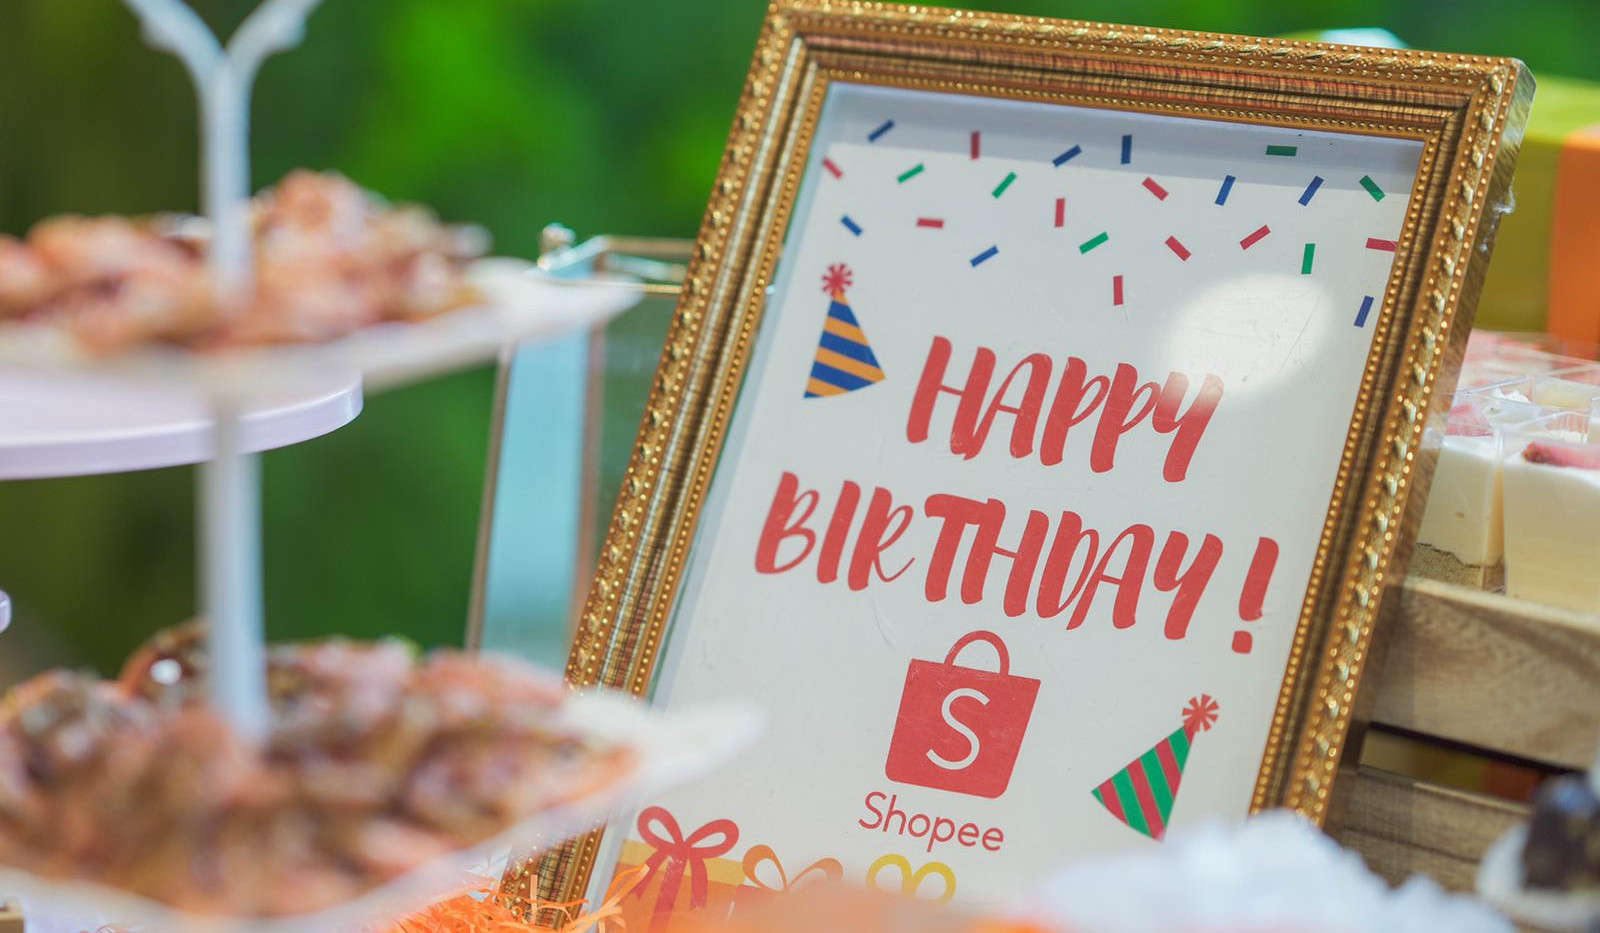 Shopee 12.12 Birthday